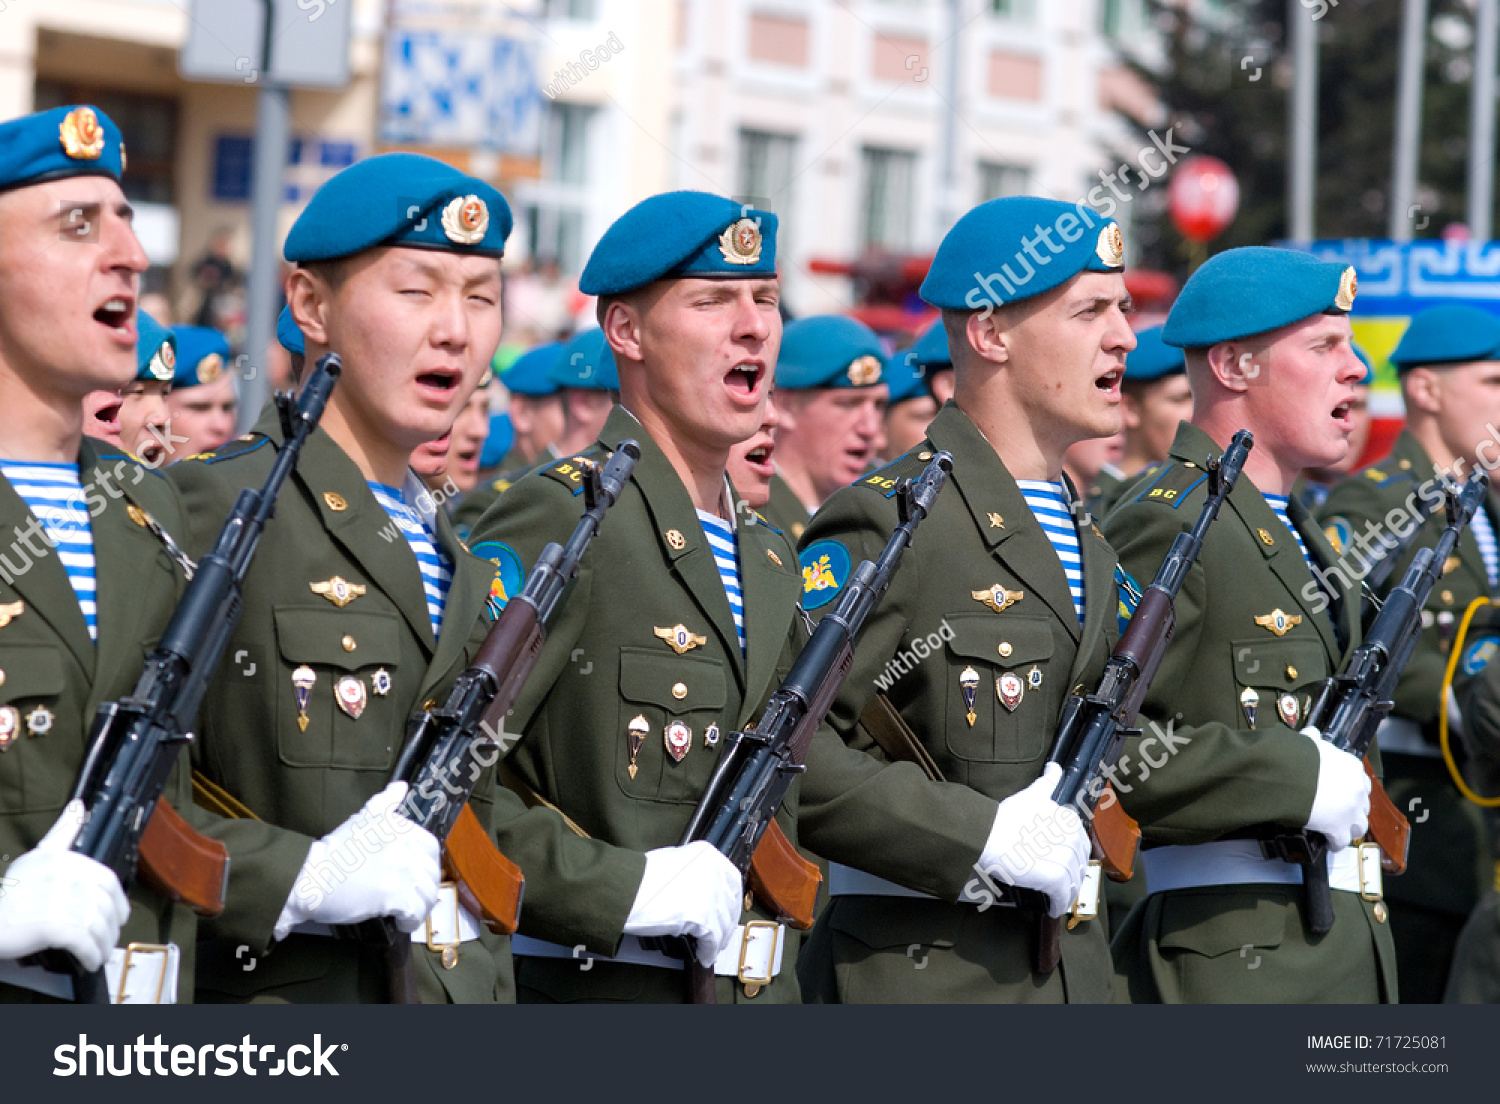 Ulanude russia may 9 young russian stock photo edit now 71725081 ulan ude russia may 9 young russian soldiers paratroopers greet the commander m4hsunfo